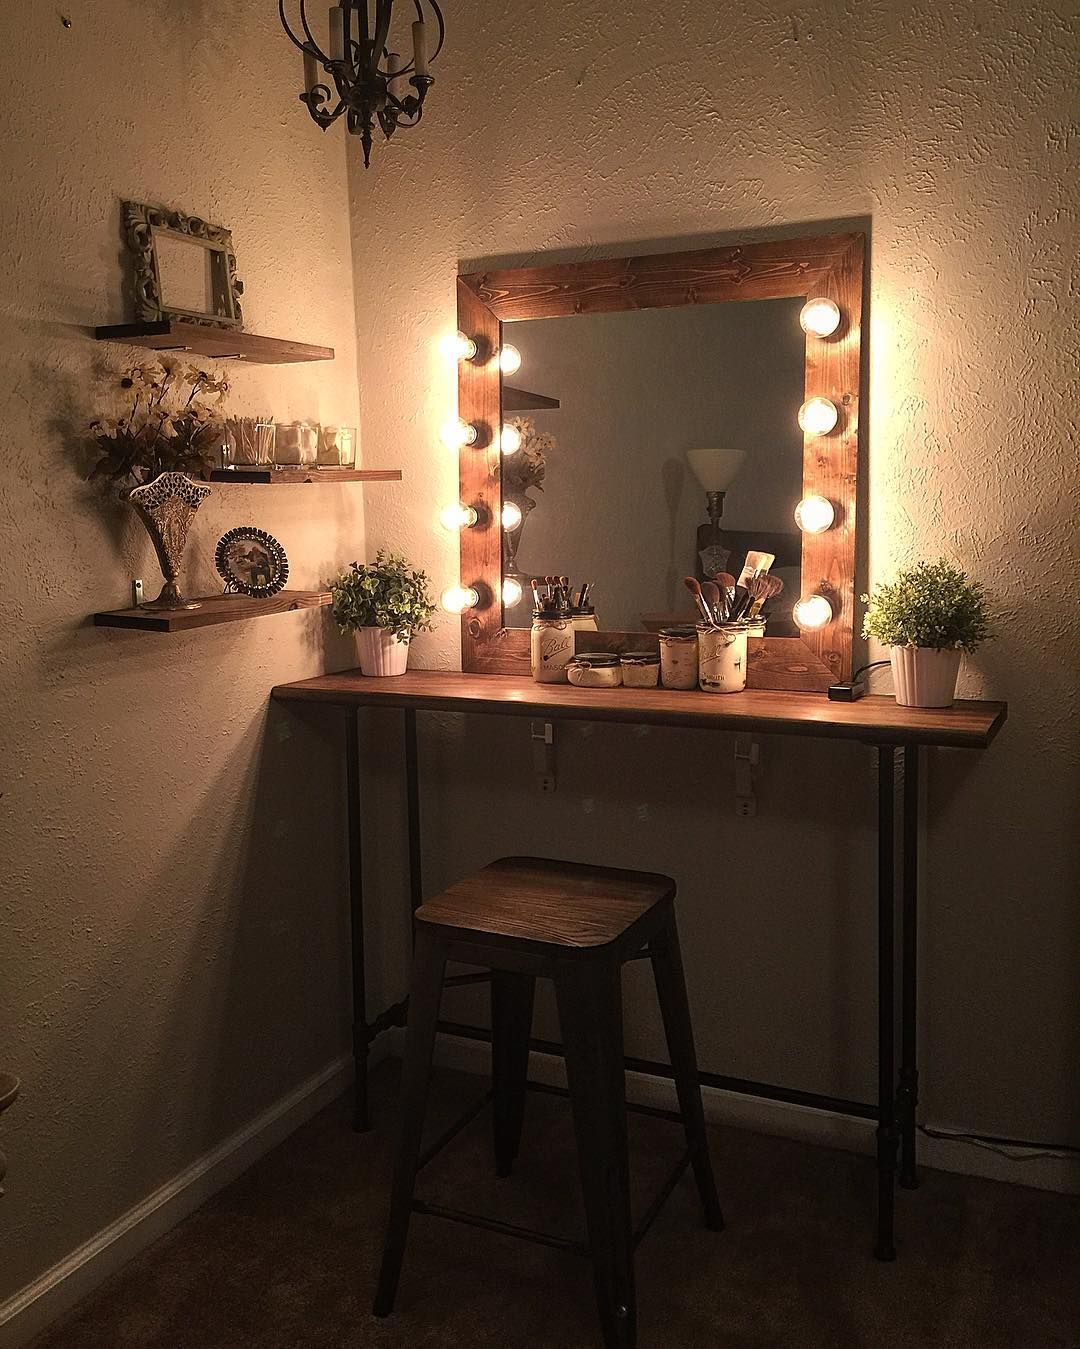 Cute Easy Simple DIY Wood Rustic Vanity Mirror With Hollywood Style Lights  4 Any Makeup Room This Cozy Farmhouse Is The Perfect Way To Get A